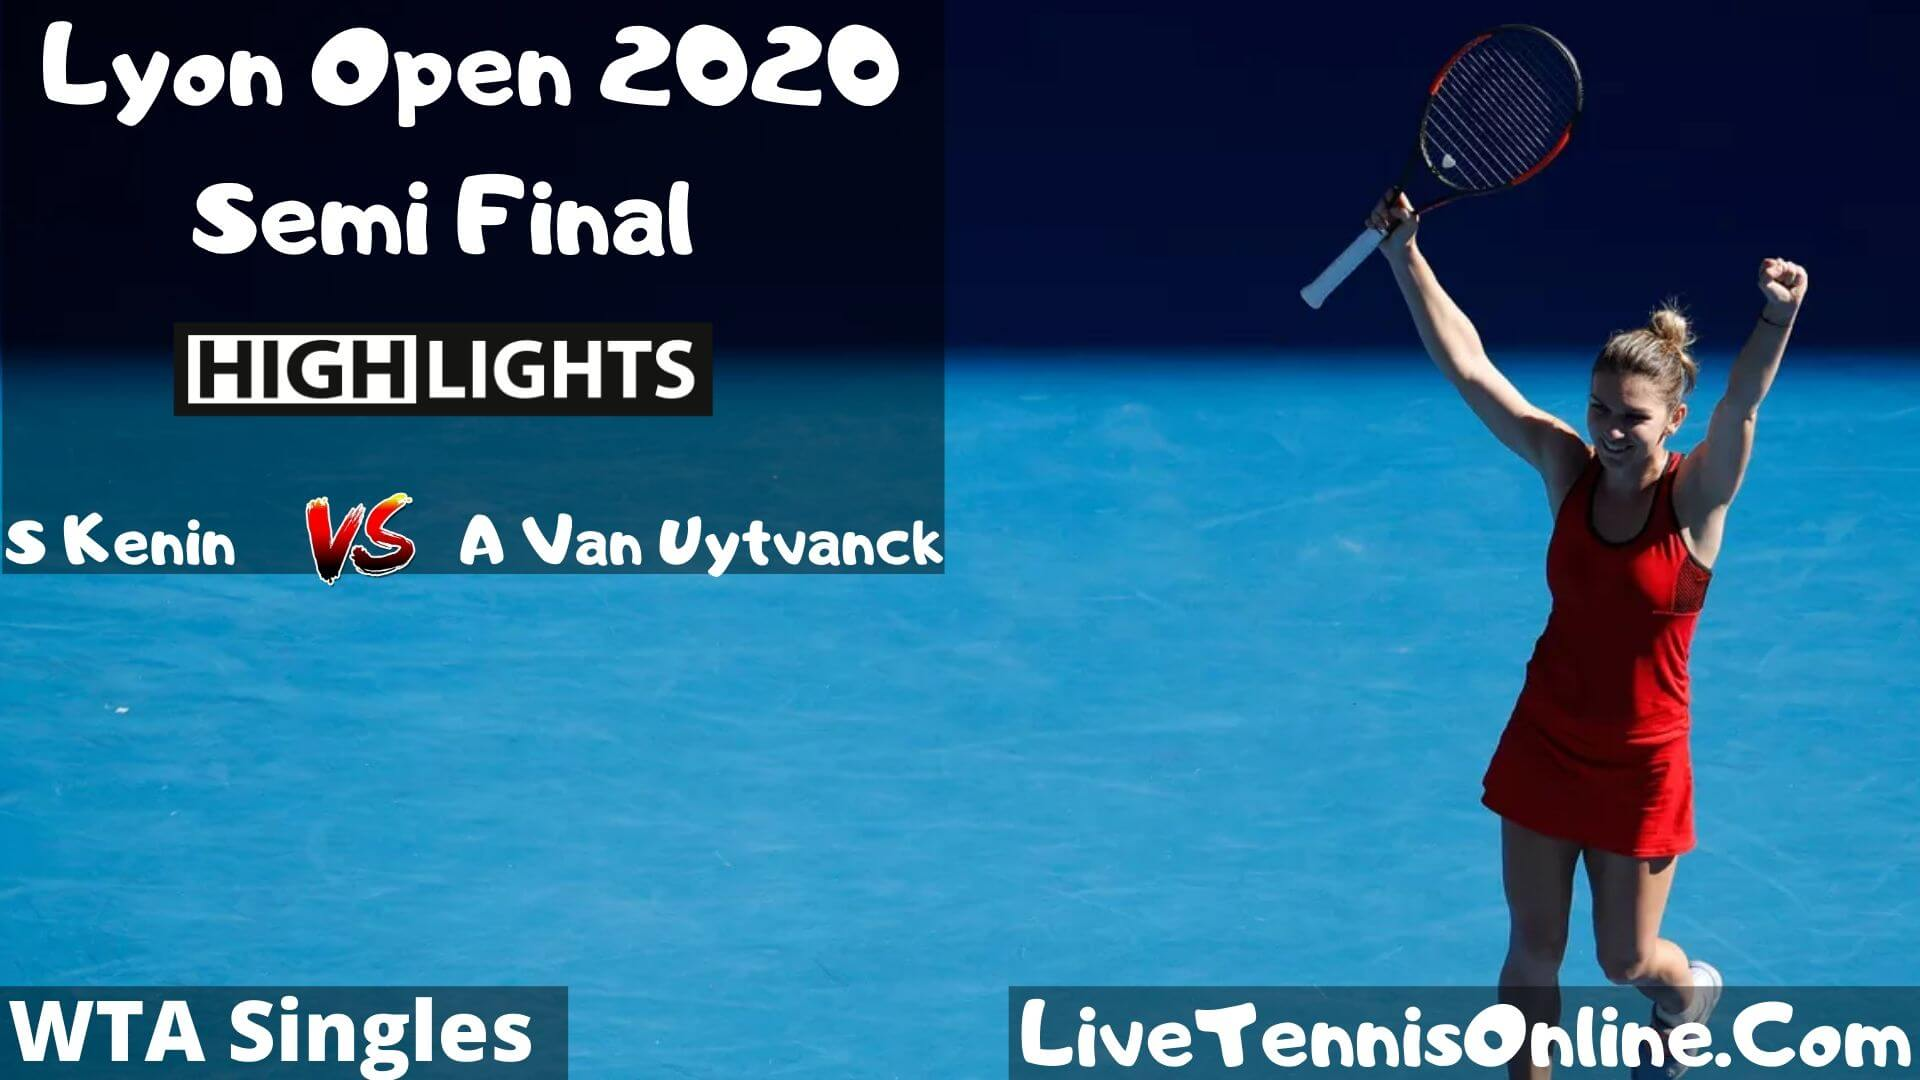 S Kenin Vs A Van Uytvanck Highlights 2020 SF Lyon Open